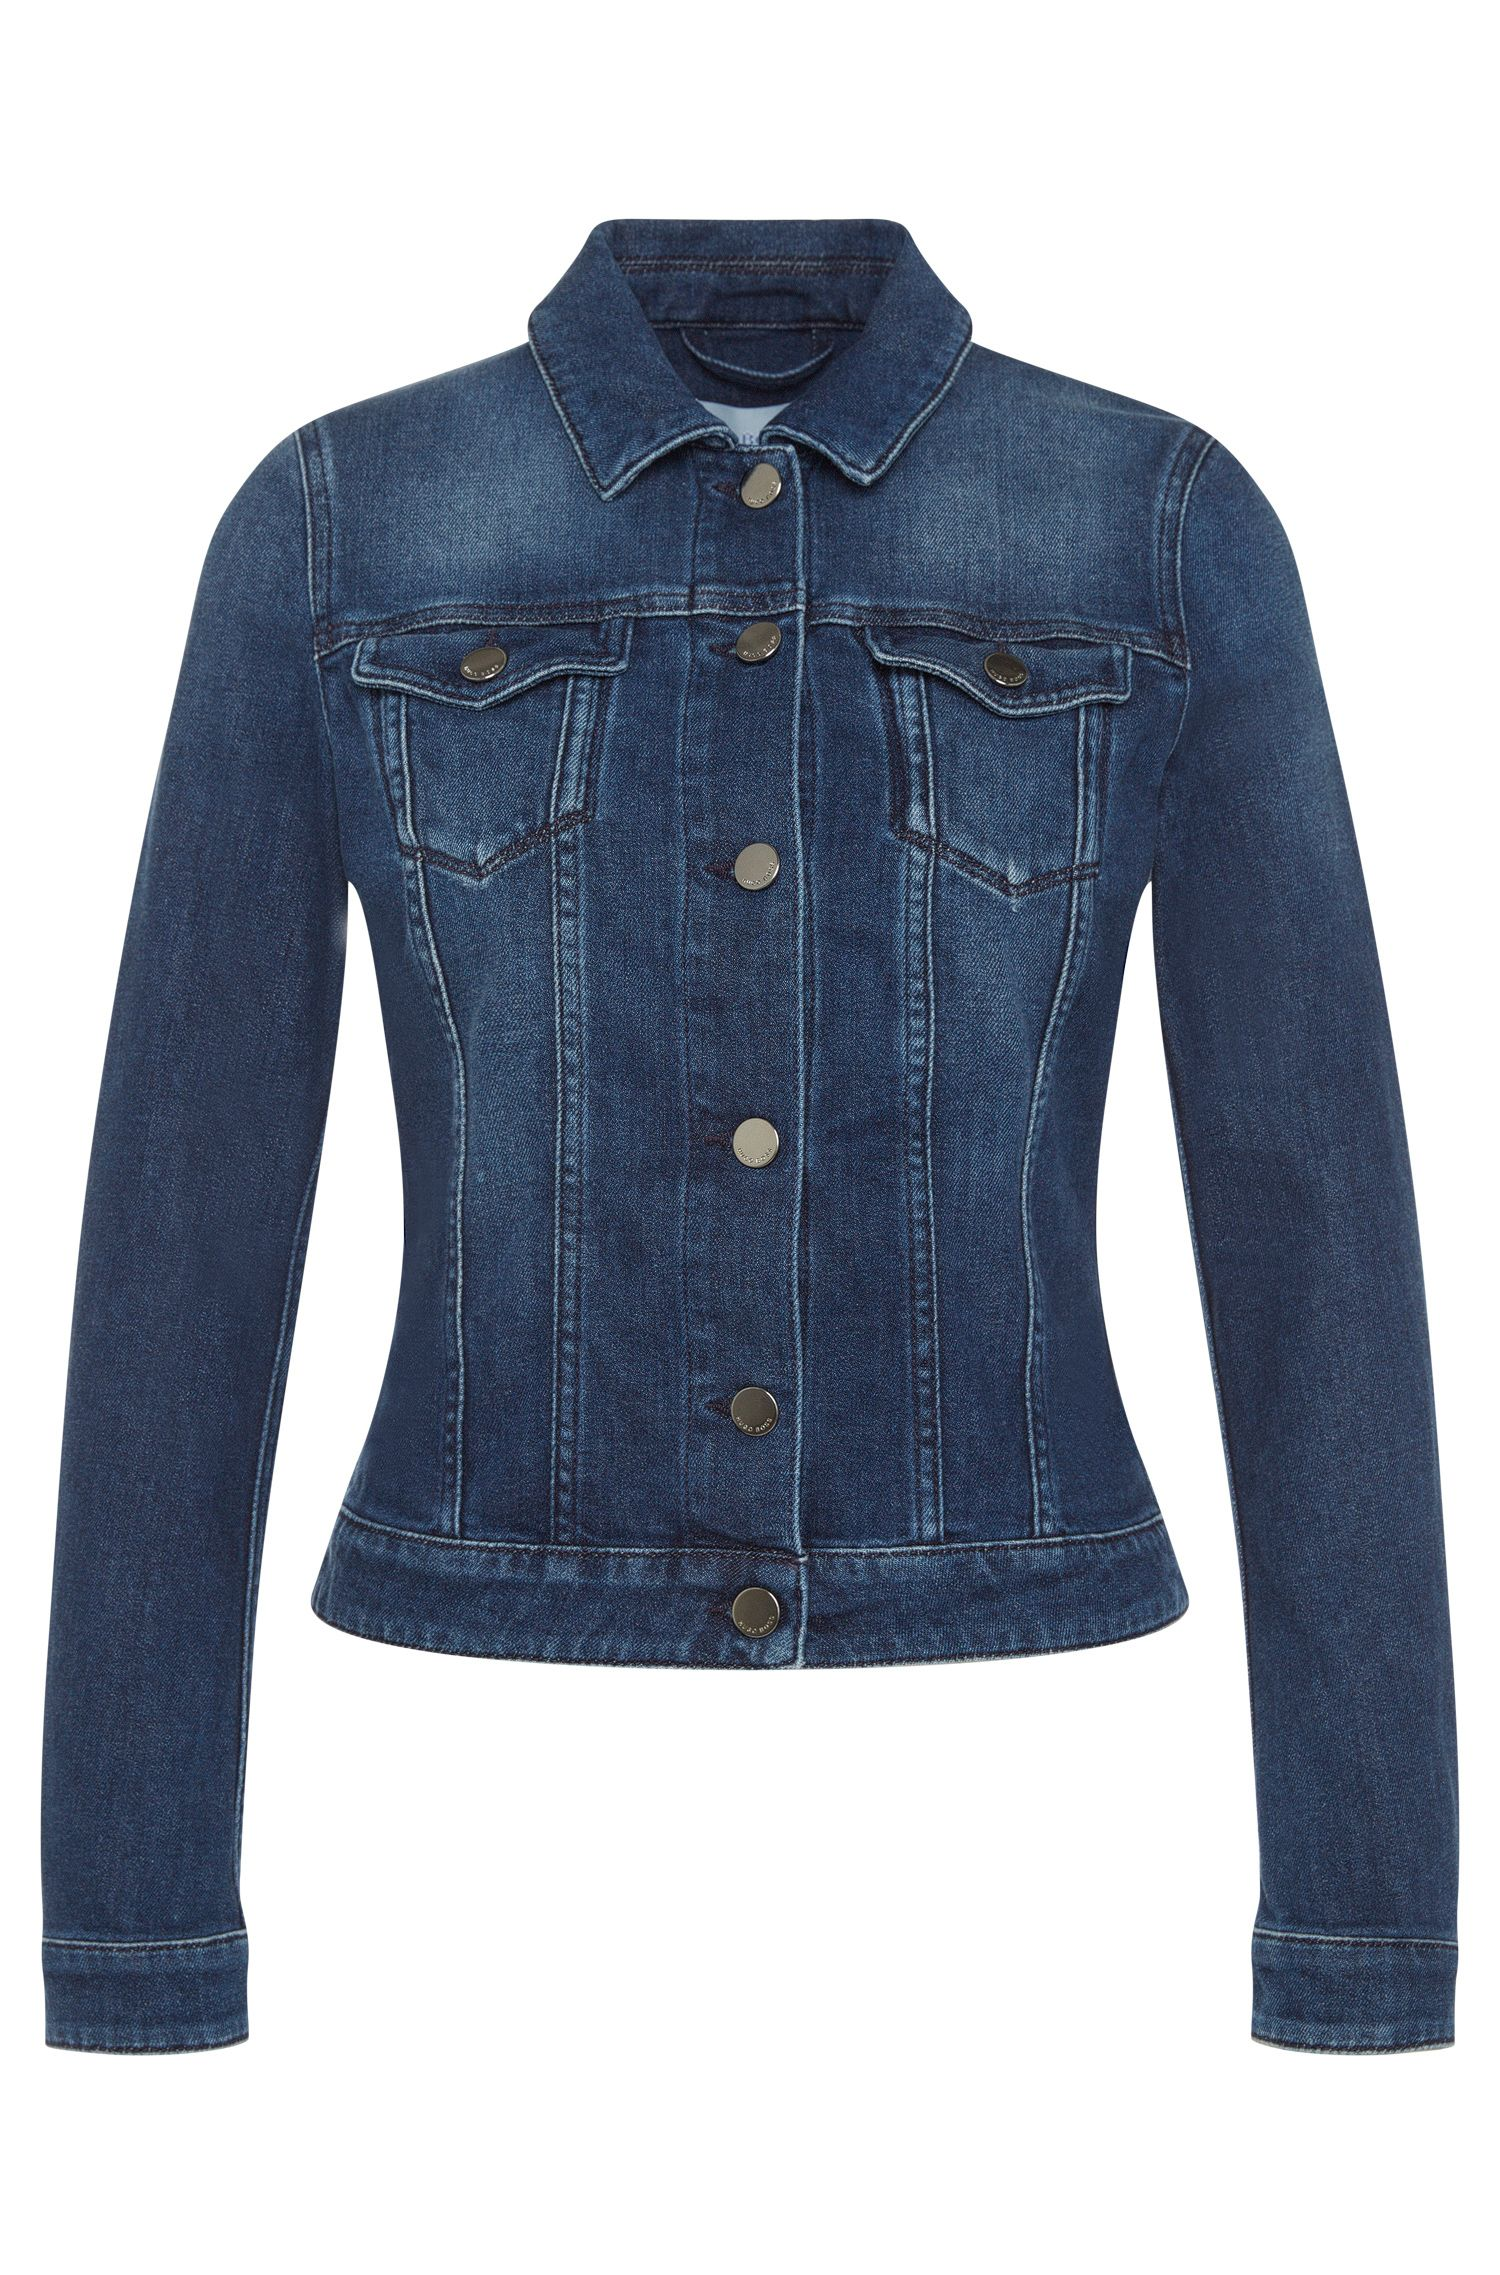 Straight-cut jeans jacket in stretch cotton: 'Norie'